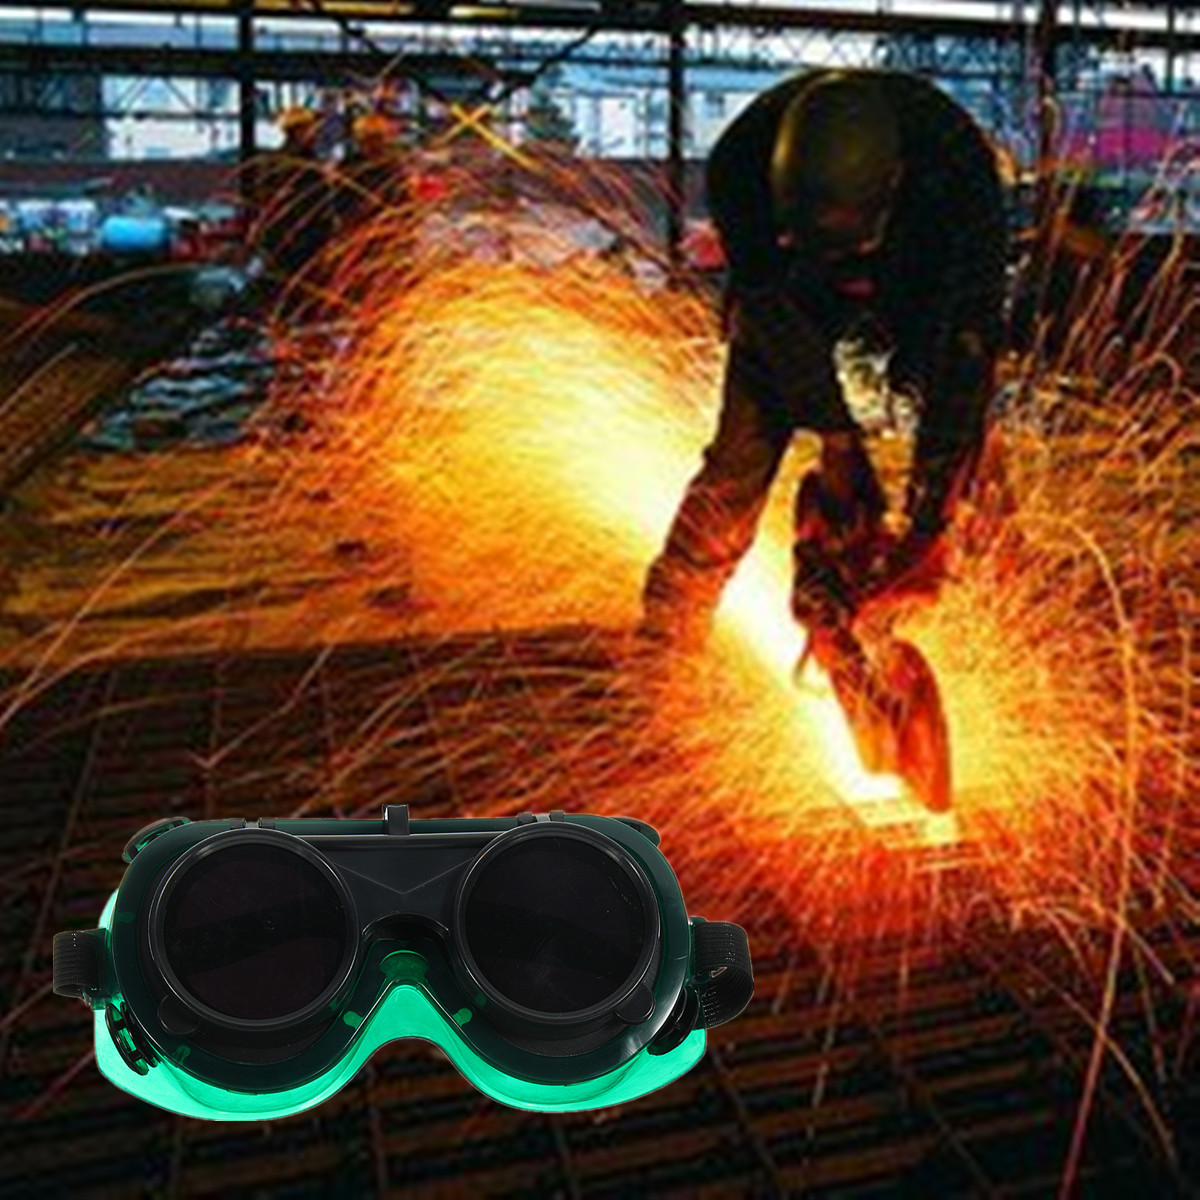 Welding Cutting Welders Safety Solder Goggles Glasses Flip Up Dark Green Lenses